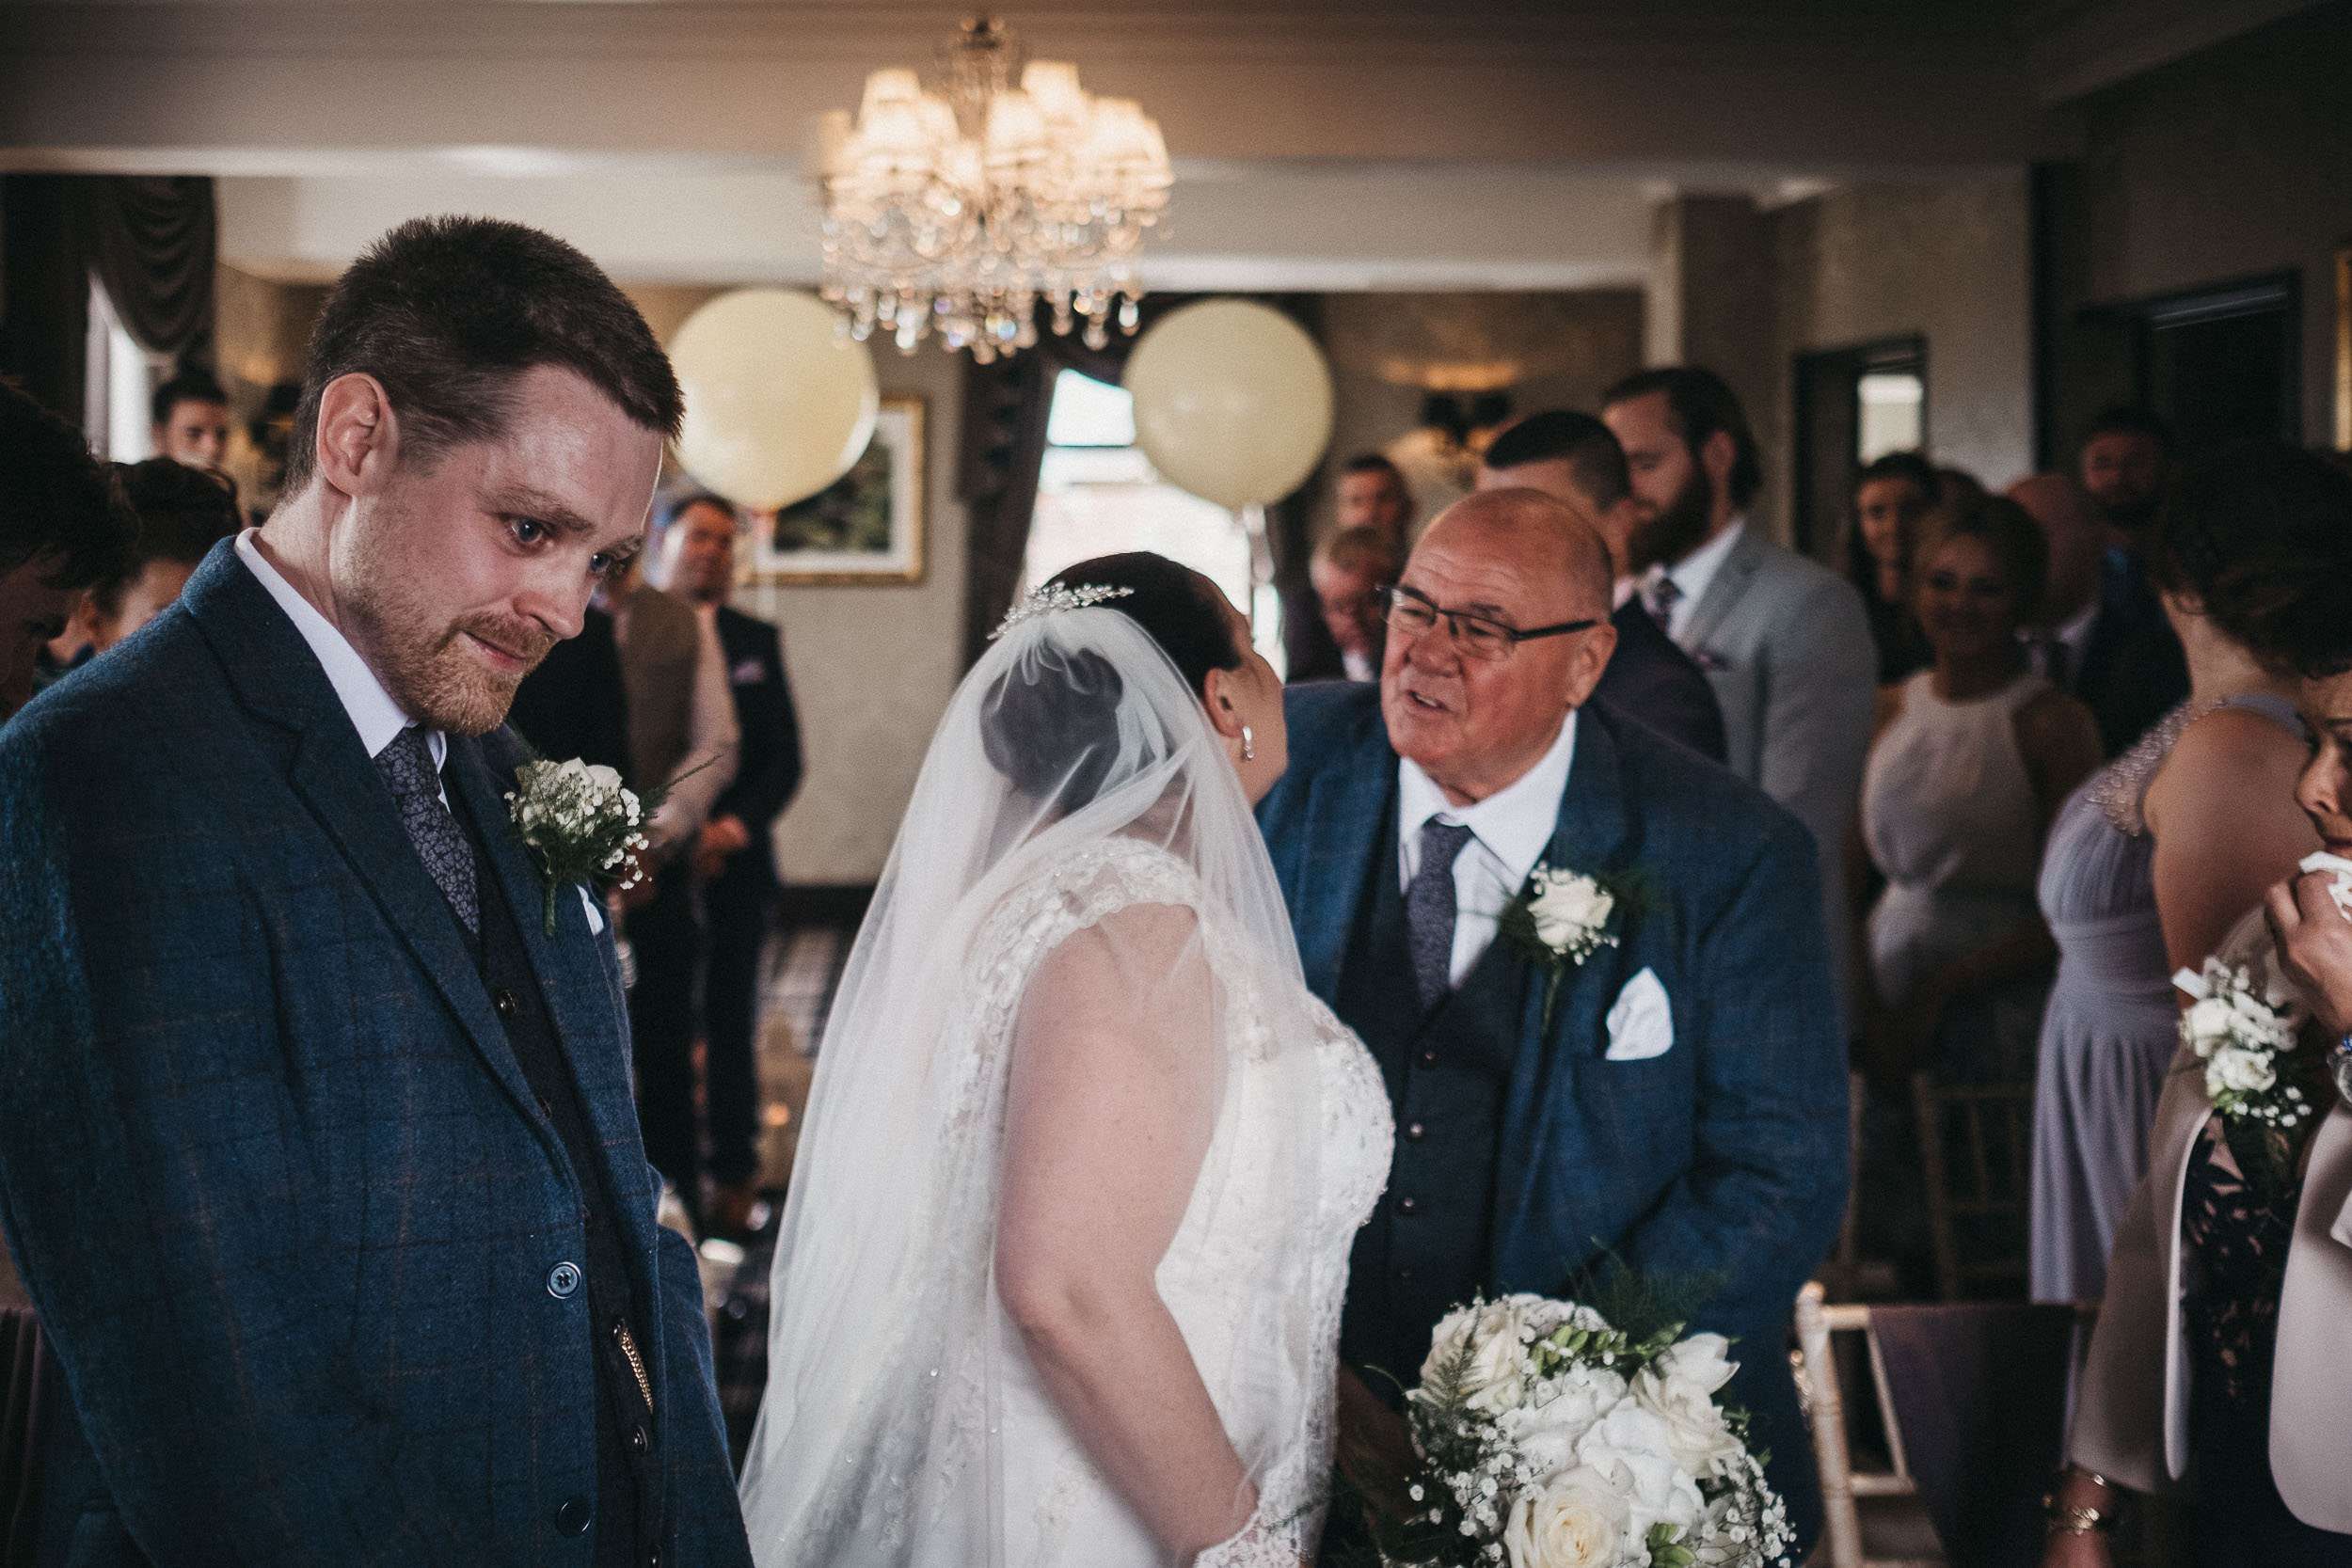 Emotional groom as the brides kisses her father at the bottom of the aisle during the wedding ceremony